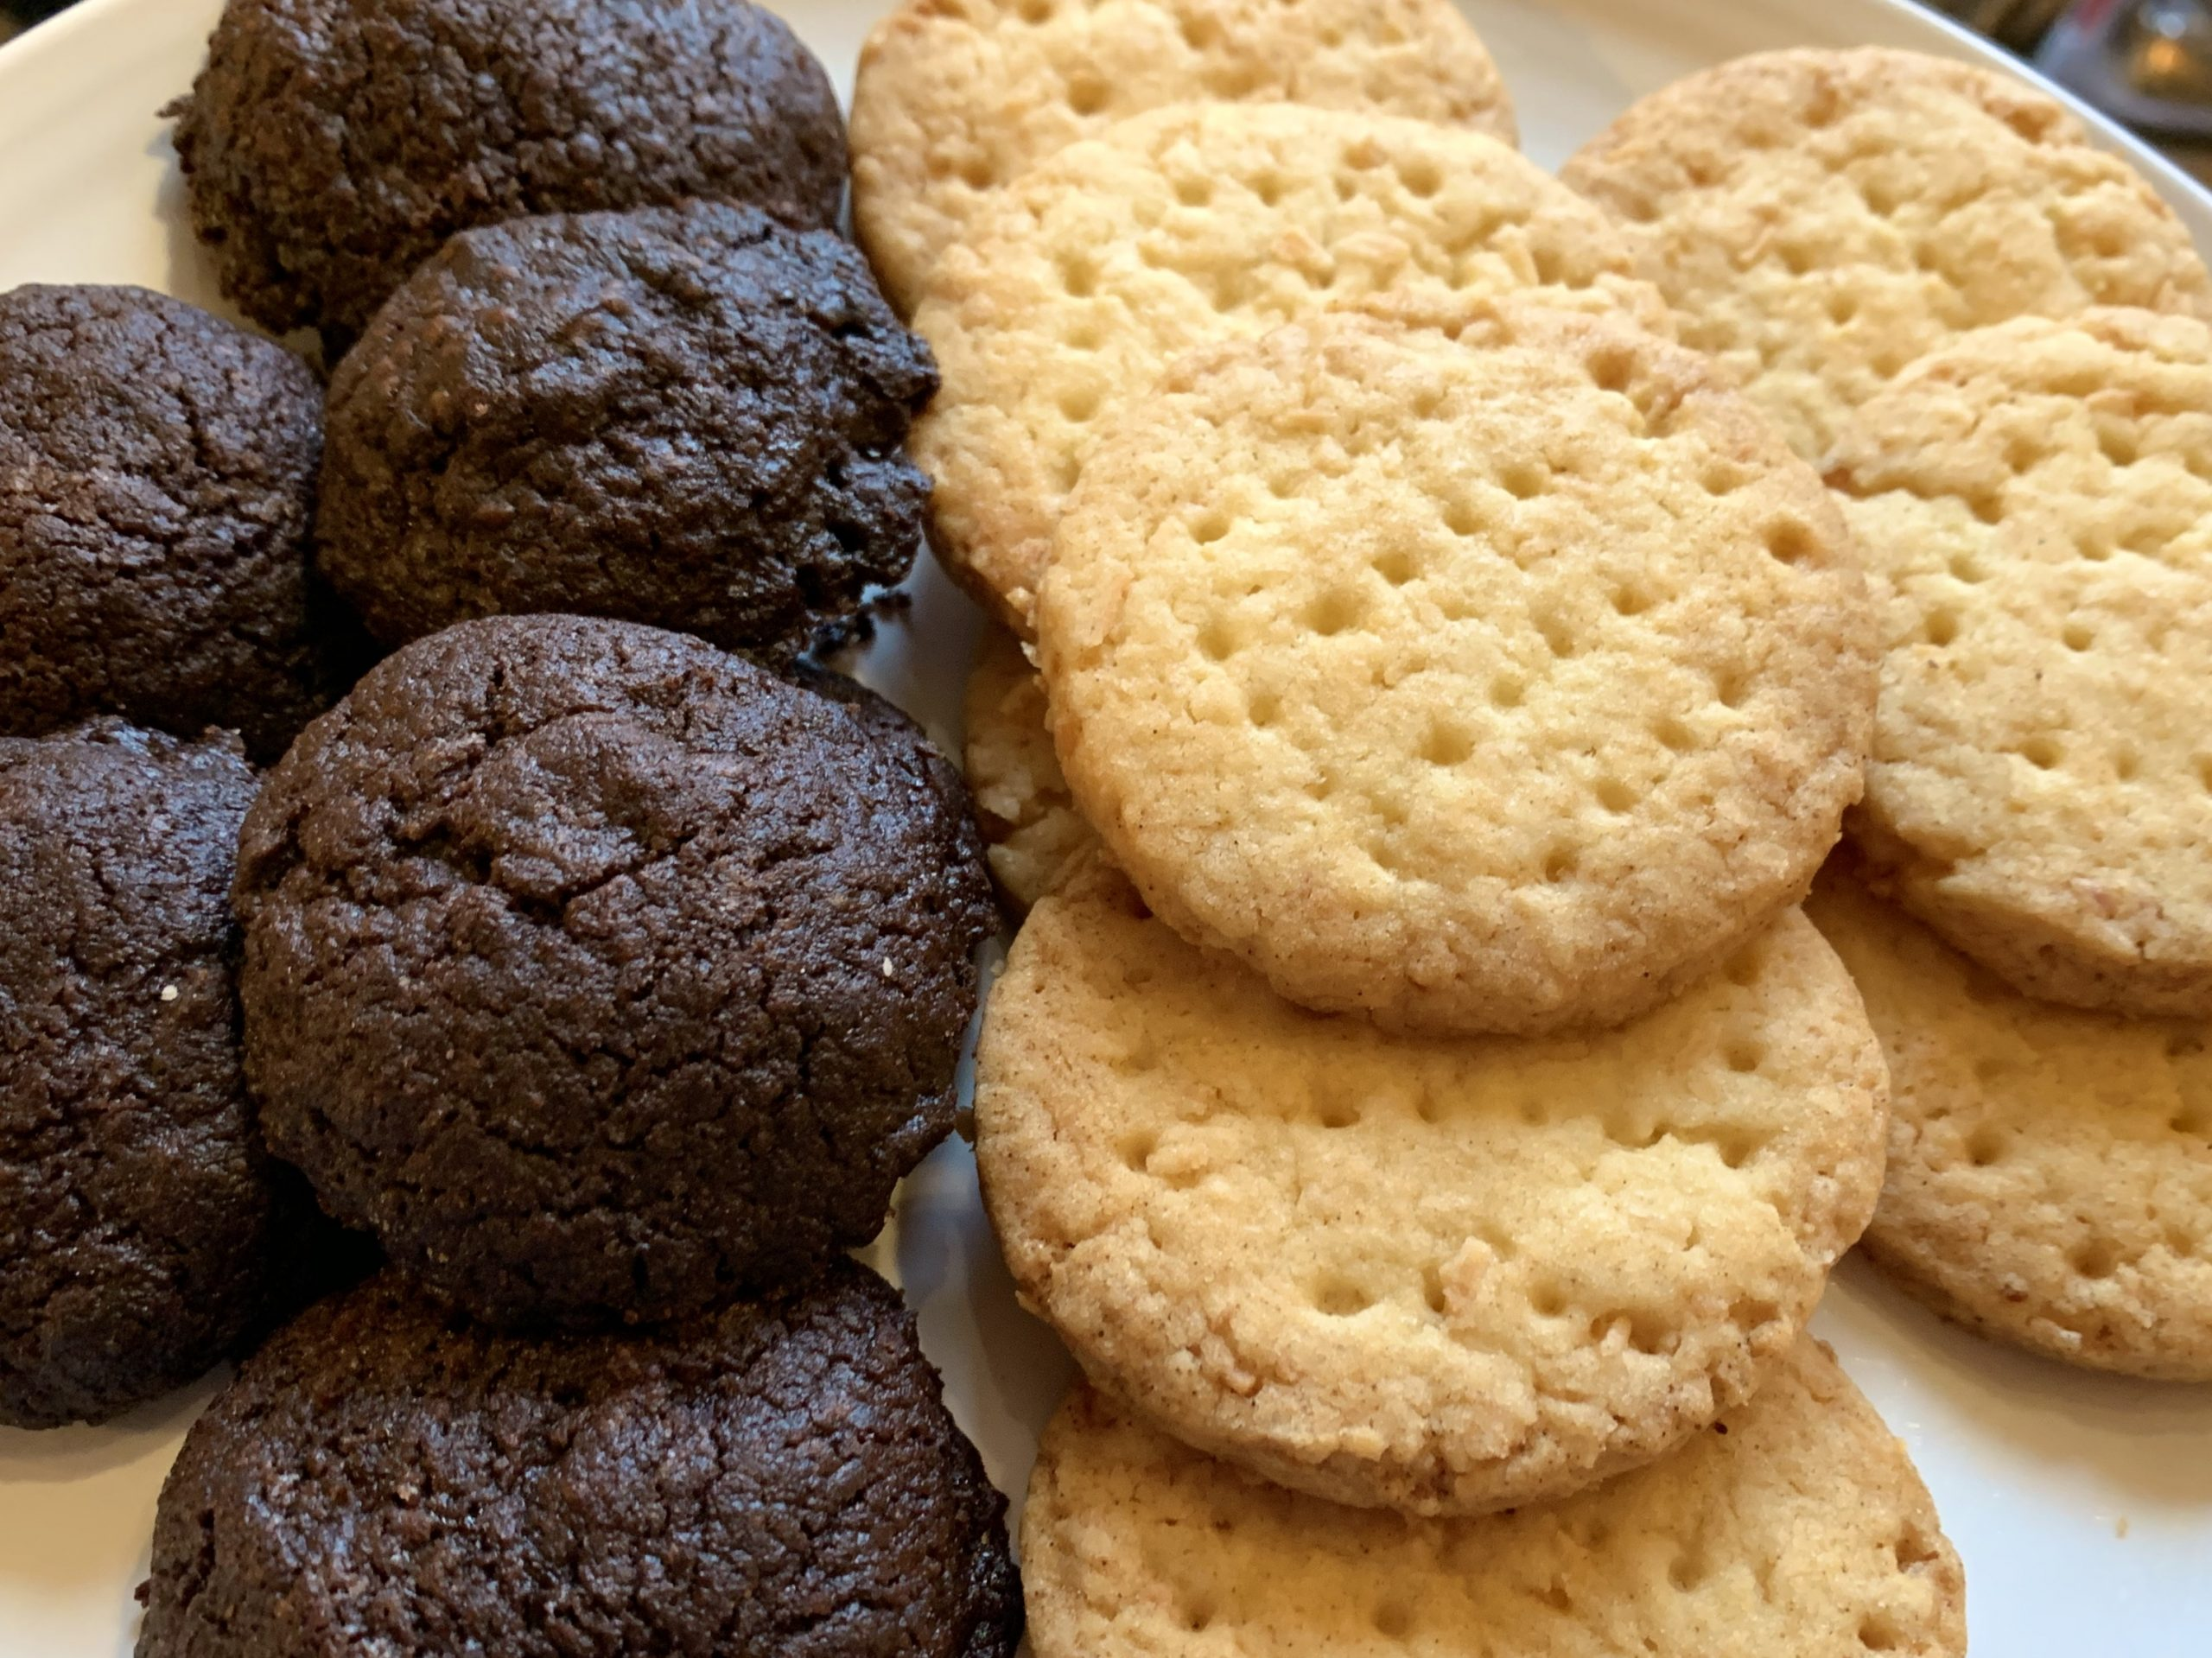 Chocolate Drops and Coconut Biscuits